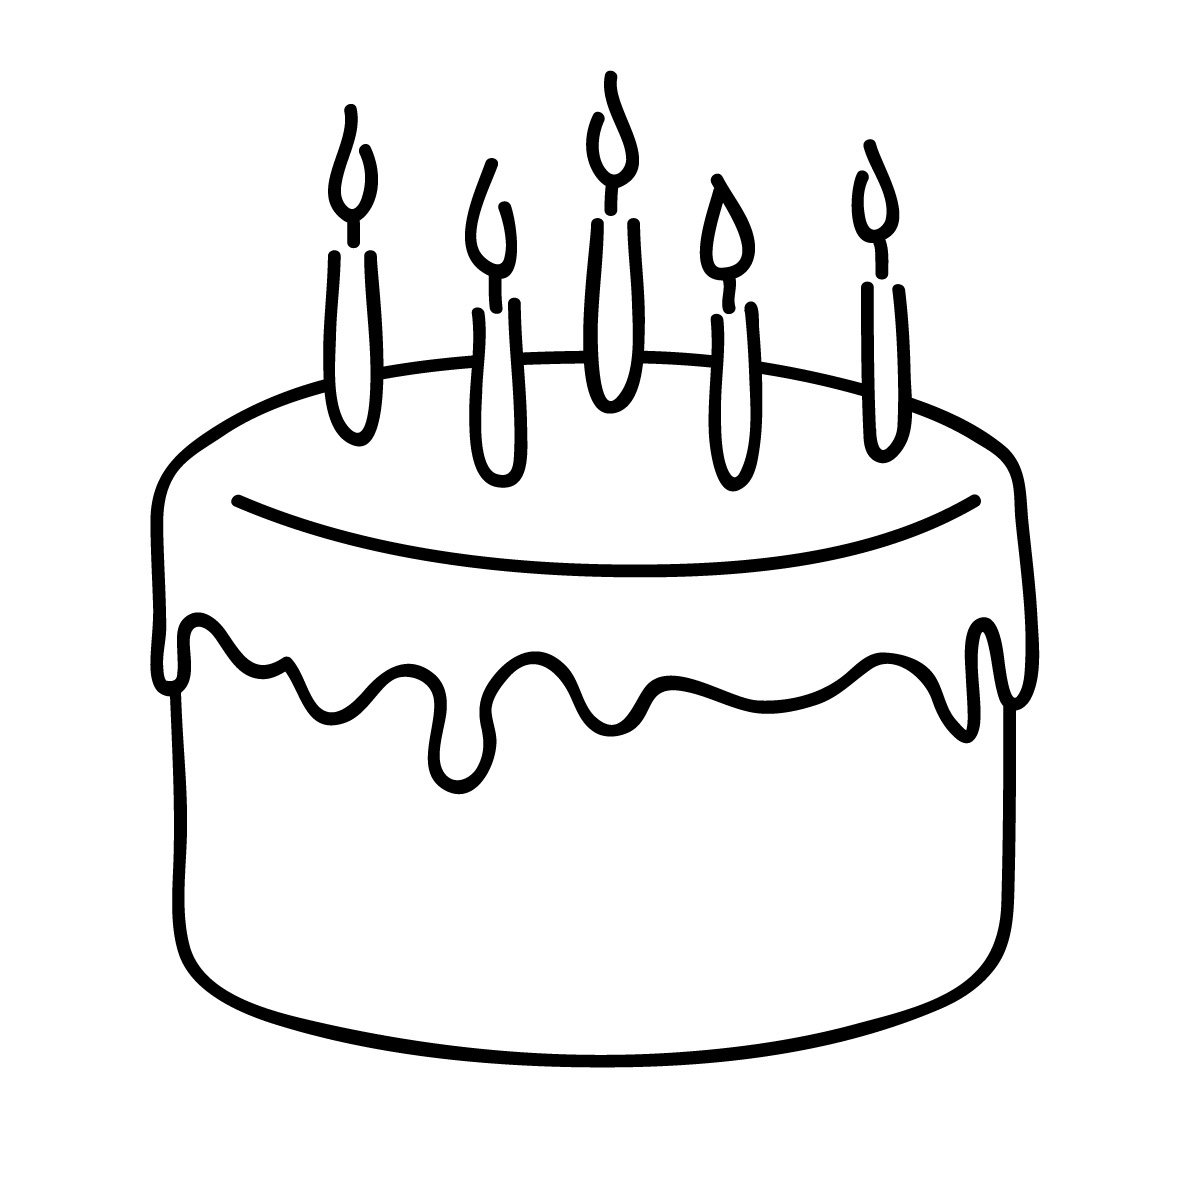 Birthday Cake Pictures To Print : Birthday Cake Outline - Cliparts.co